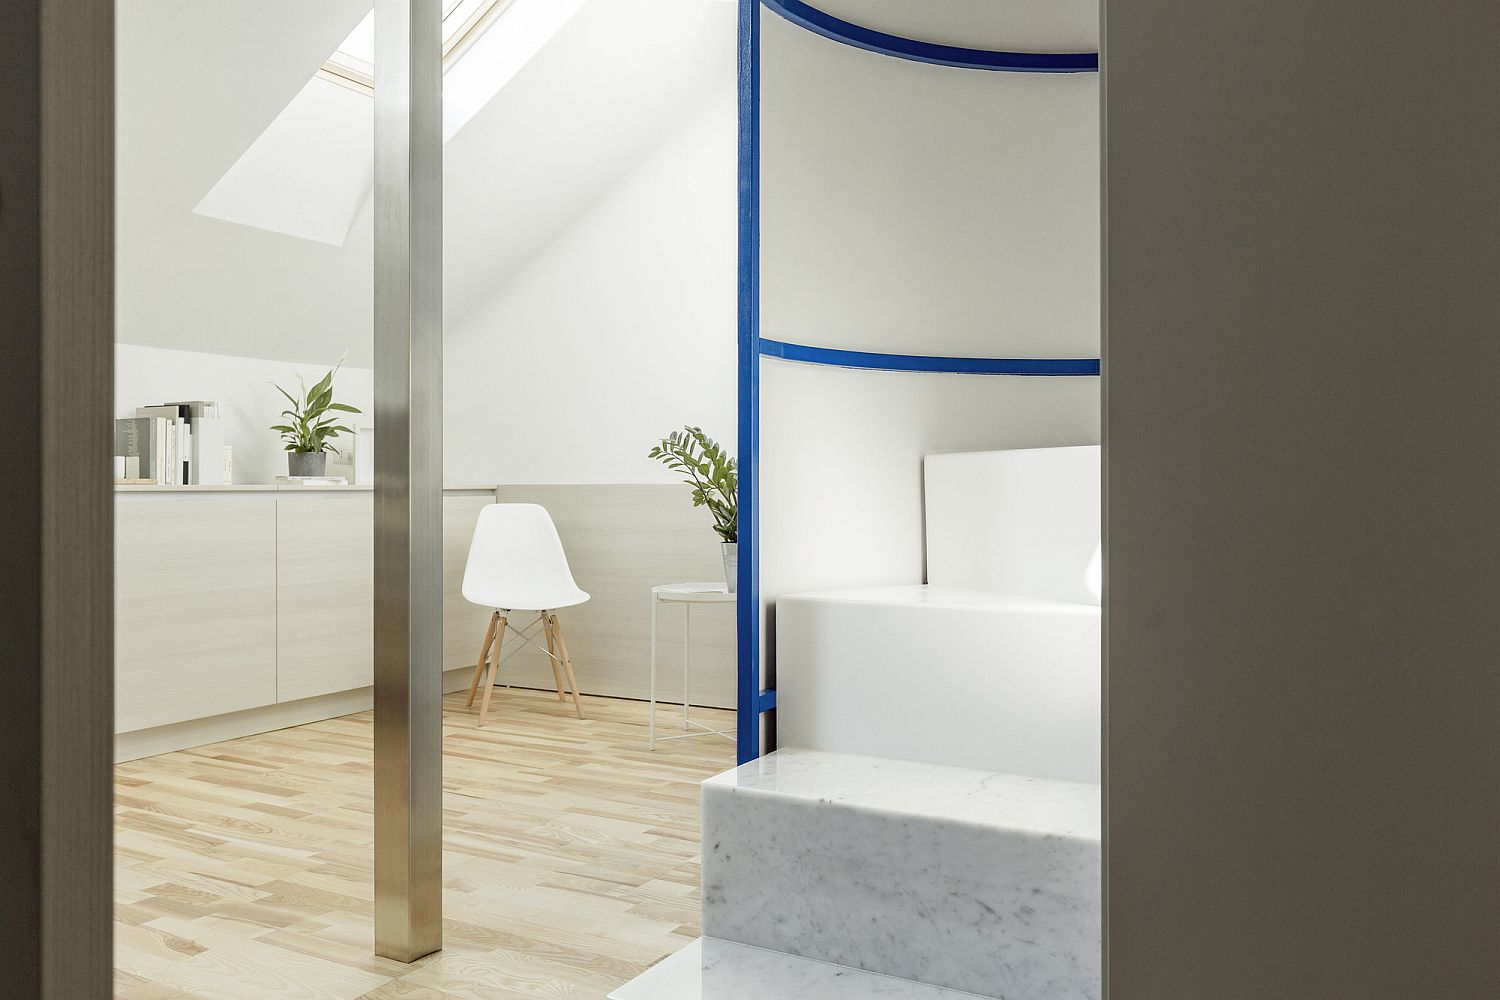 1559229132 72 compact white and wood apartment in milan maximizes space in style - Compact White and Wood Apartment in Milan Maximizes Space in Style